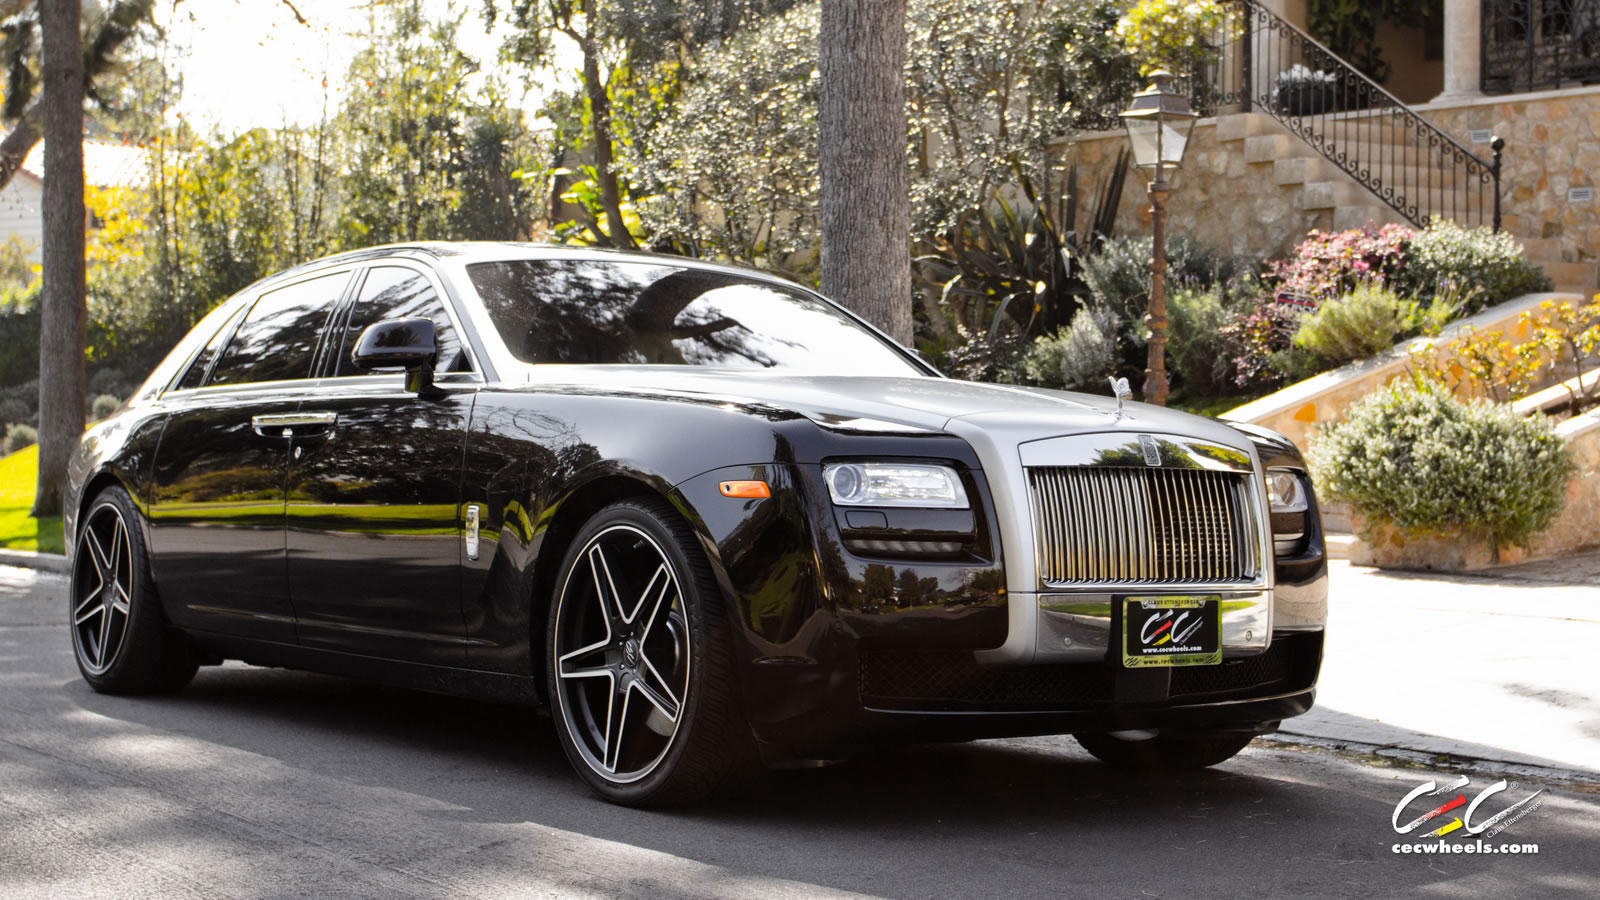 2012 Rolls royce Ghost #18